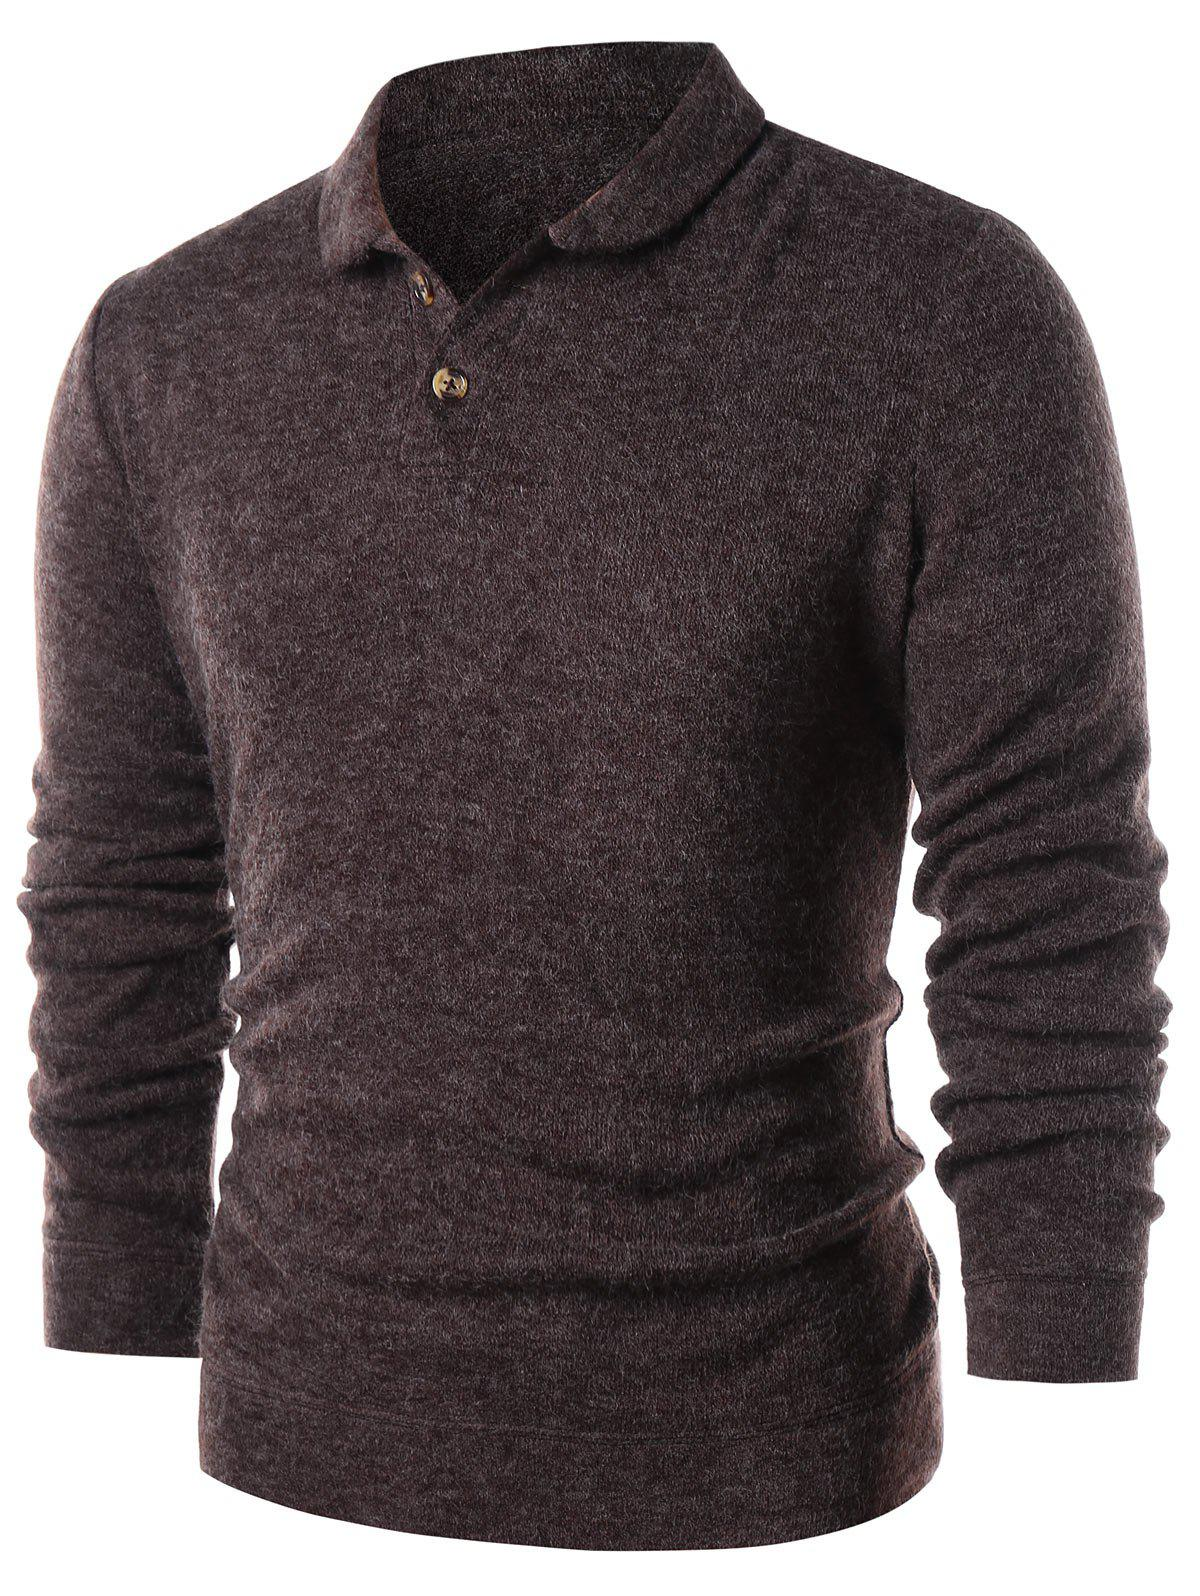 Half Button Solid Color Pullover Sweater - DEEP BROWN XL